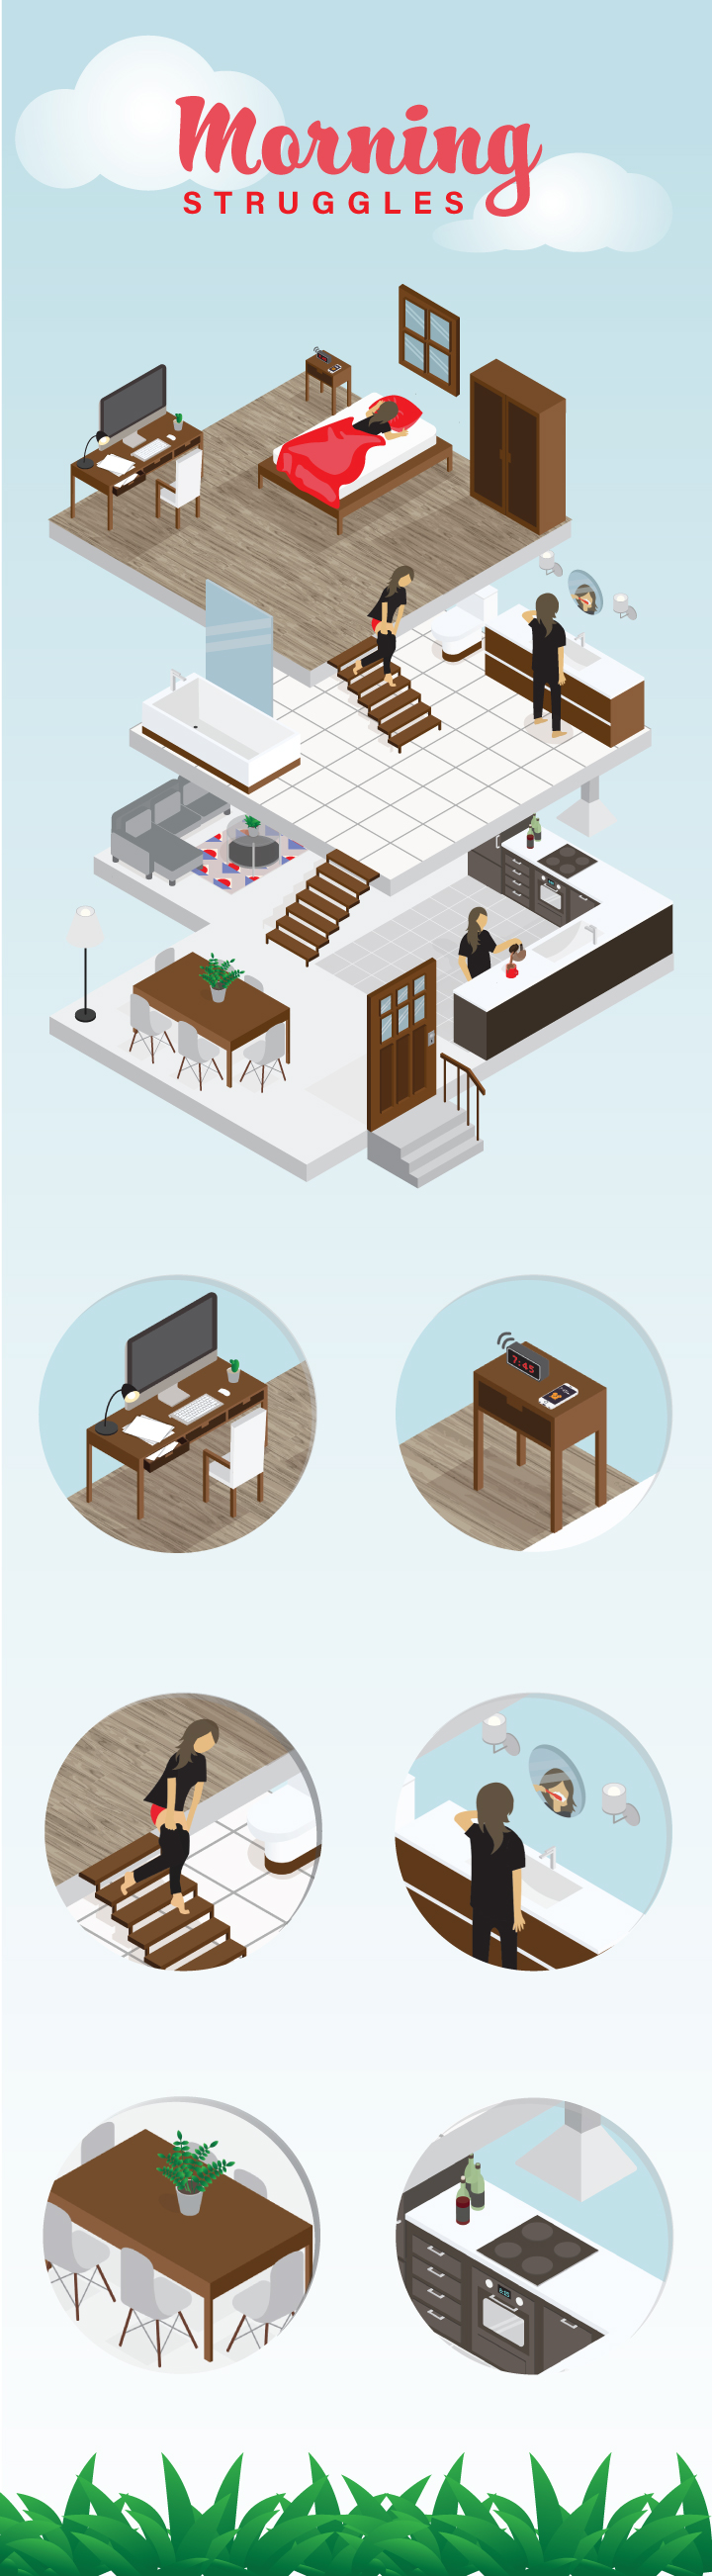 isometric morning struggles illustration